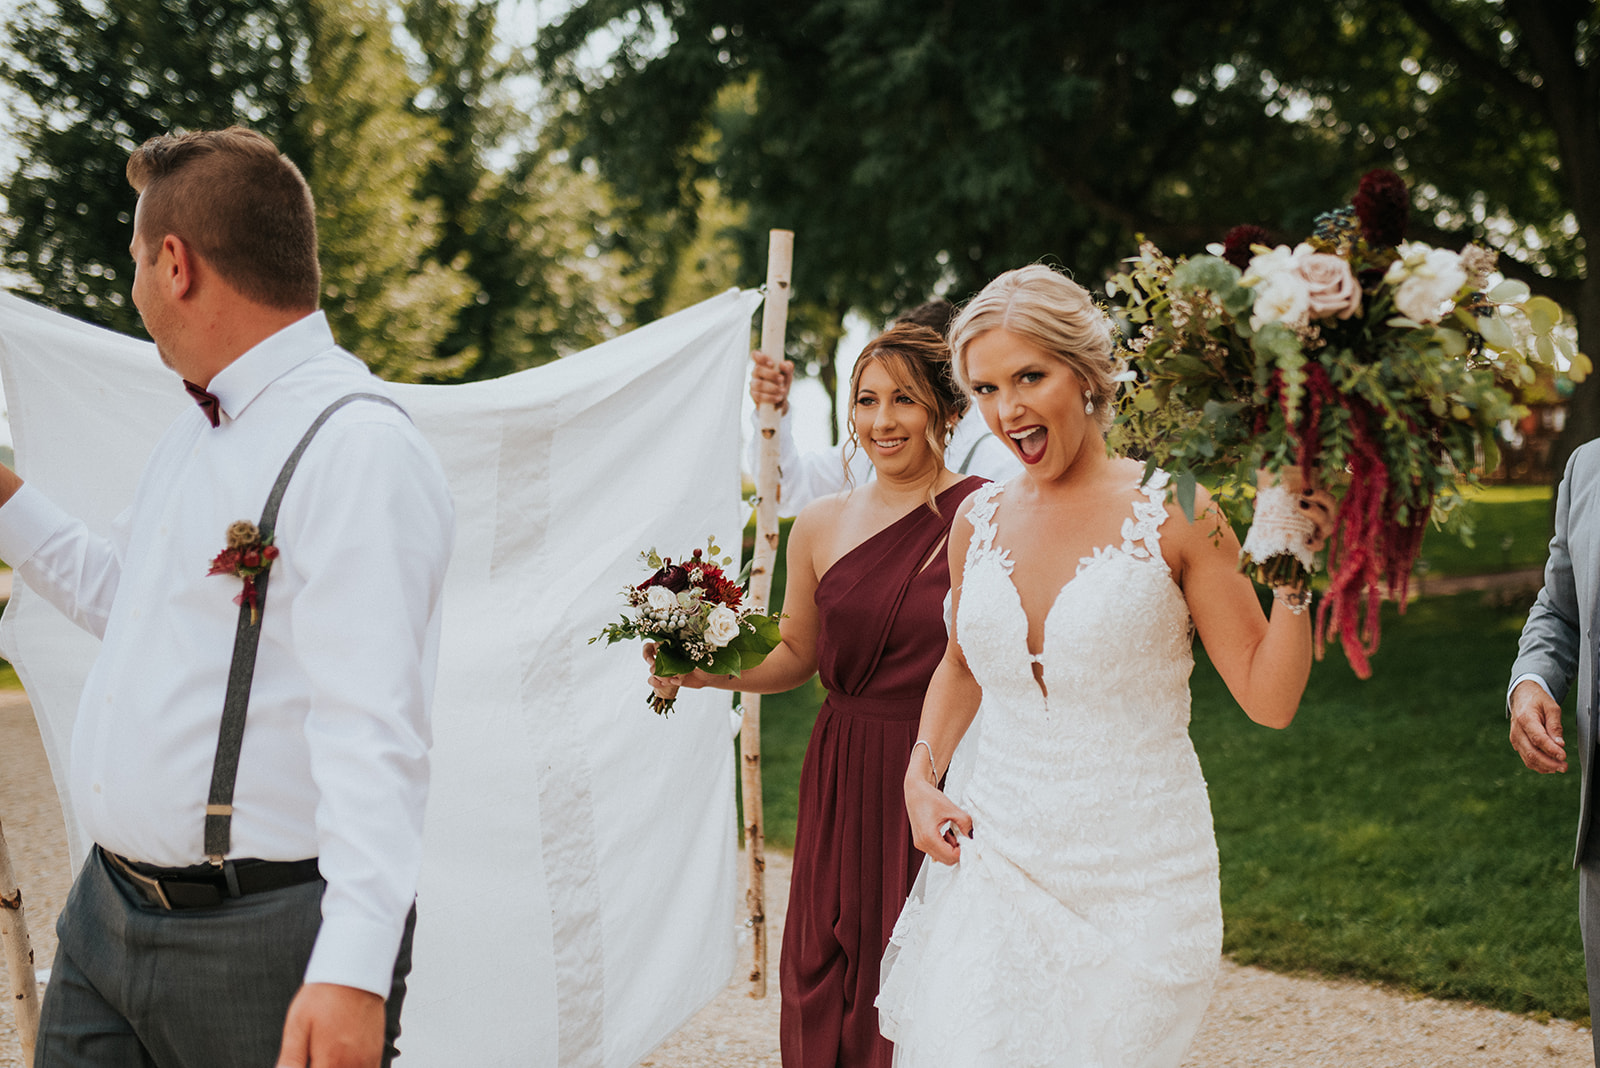 overthevineswisconsinwedding_0529.jpg